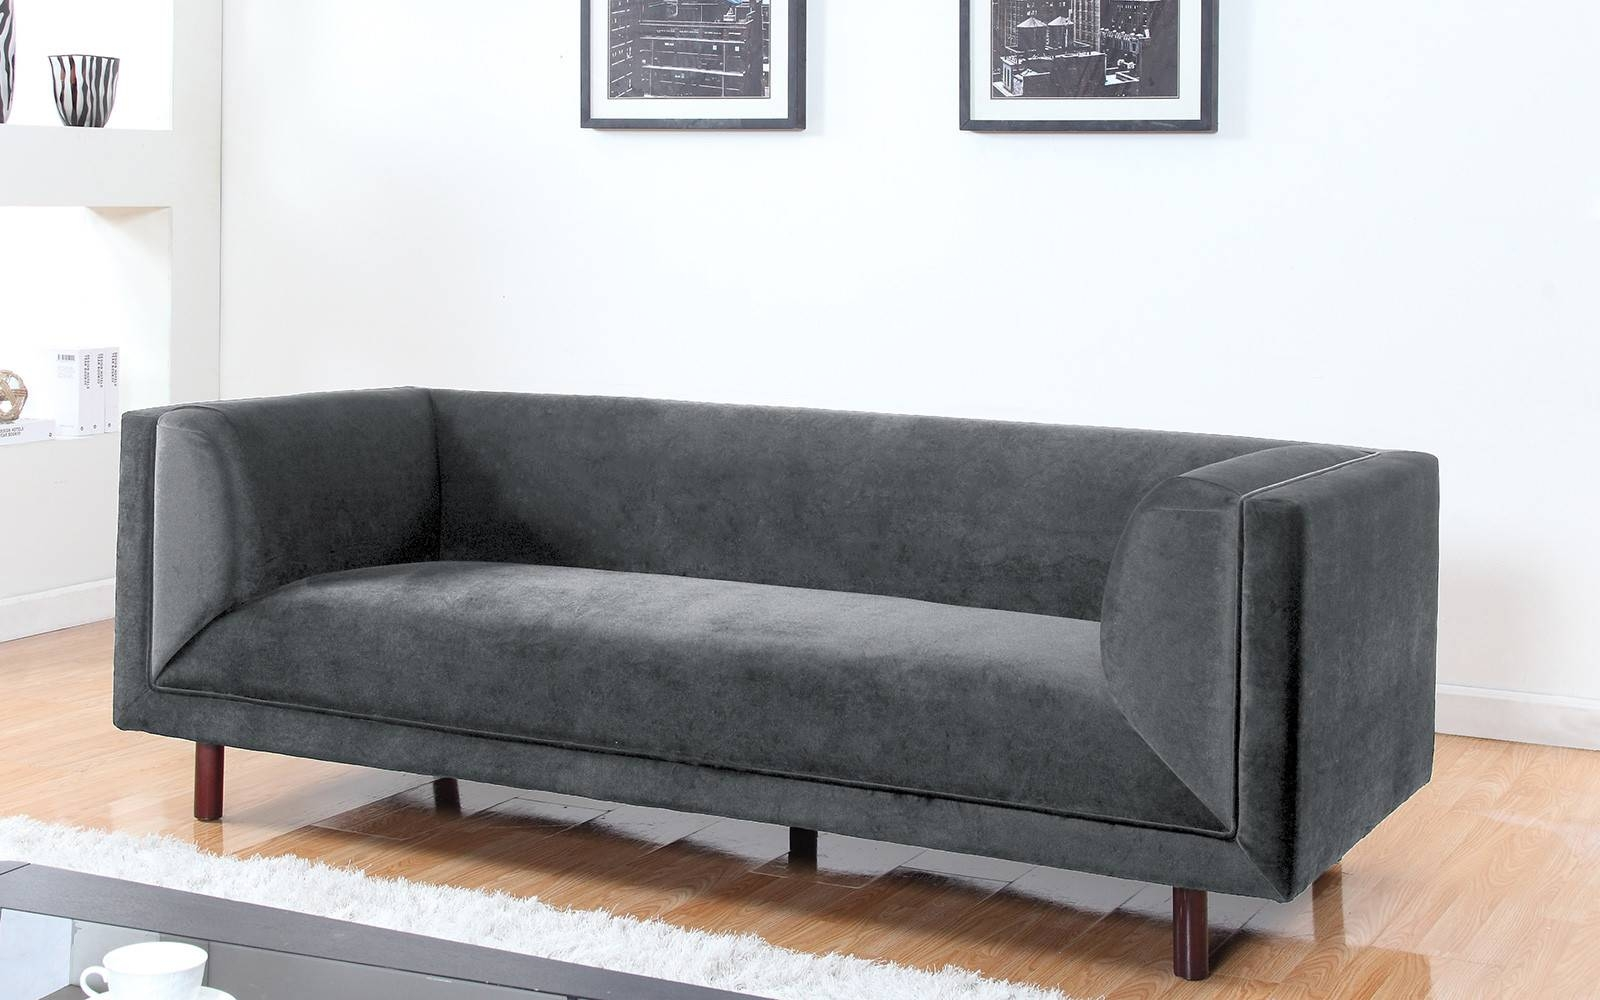 Modern Contemporary Large 3 Seater Velvet Sofa – Walmart Pertaining To Modern 3 Seater Sofas (View 4 of 30)